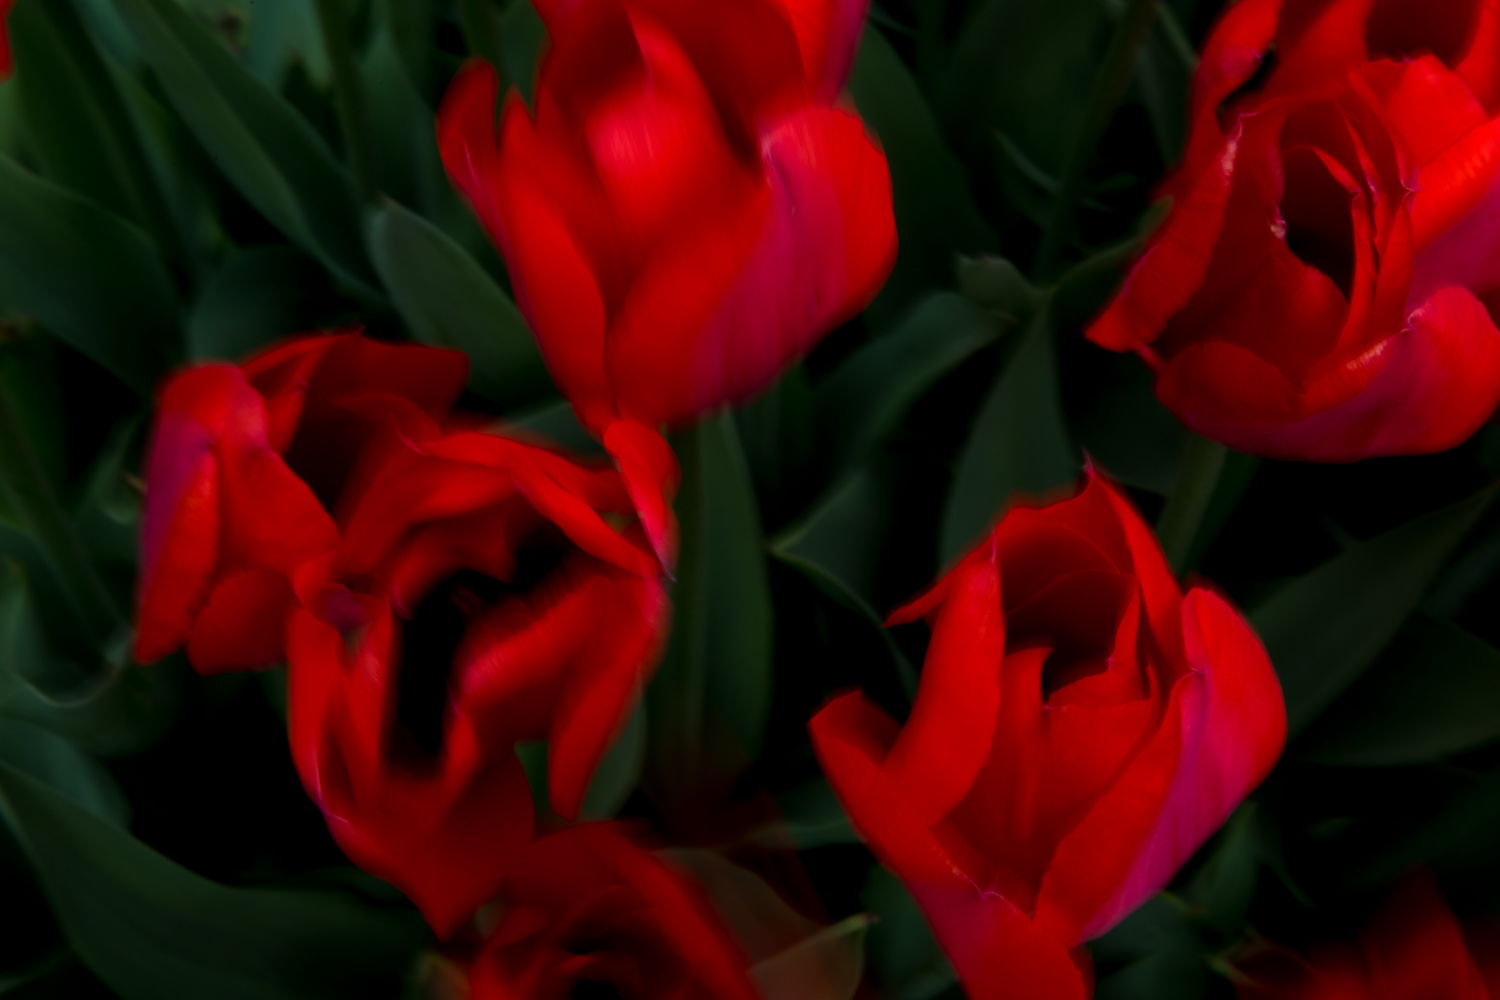 Red Tulips, No. 5